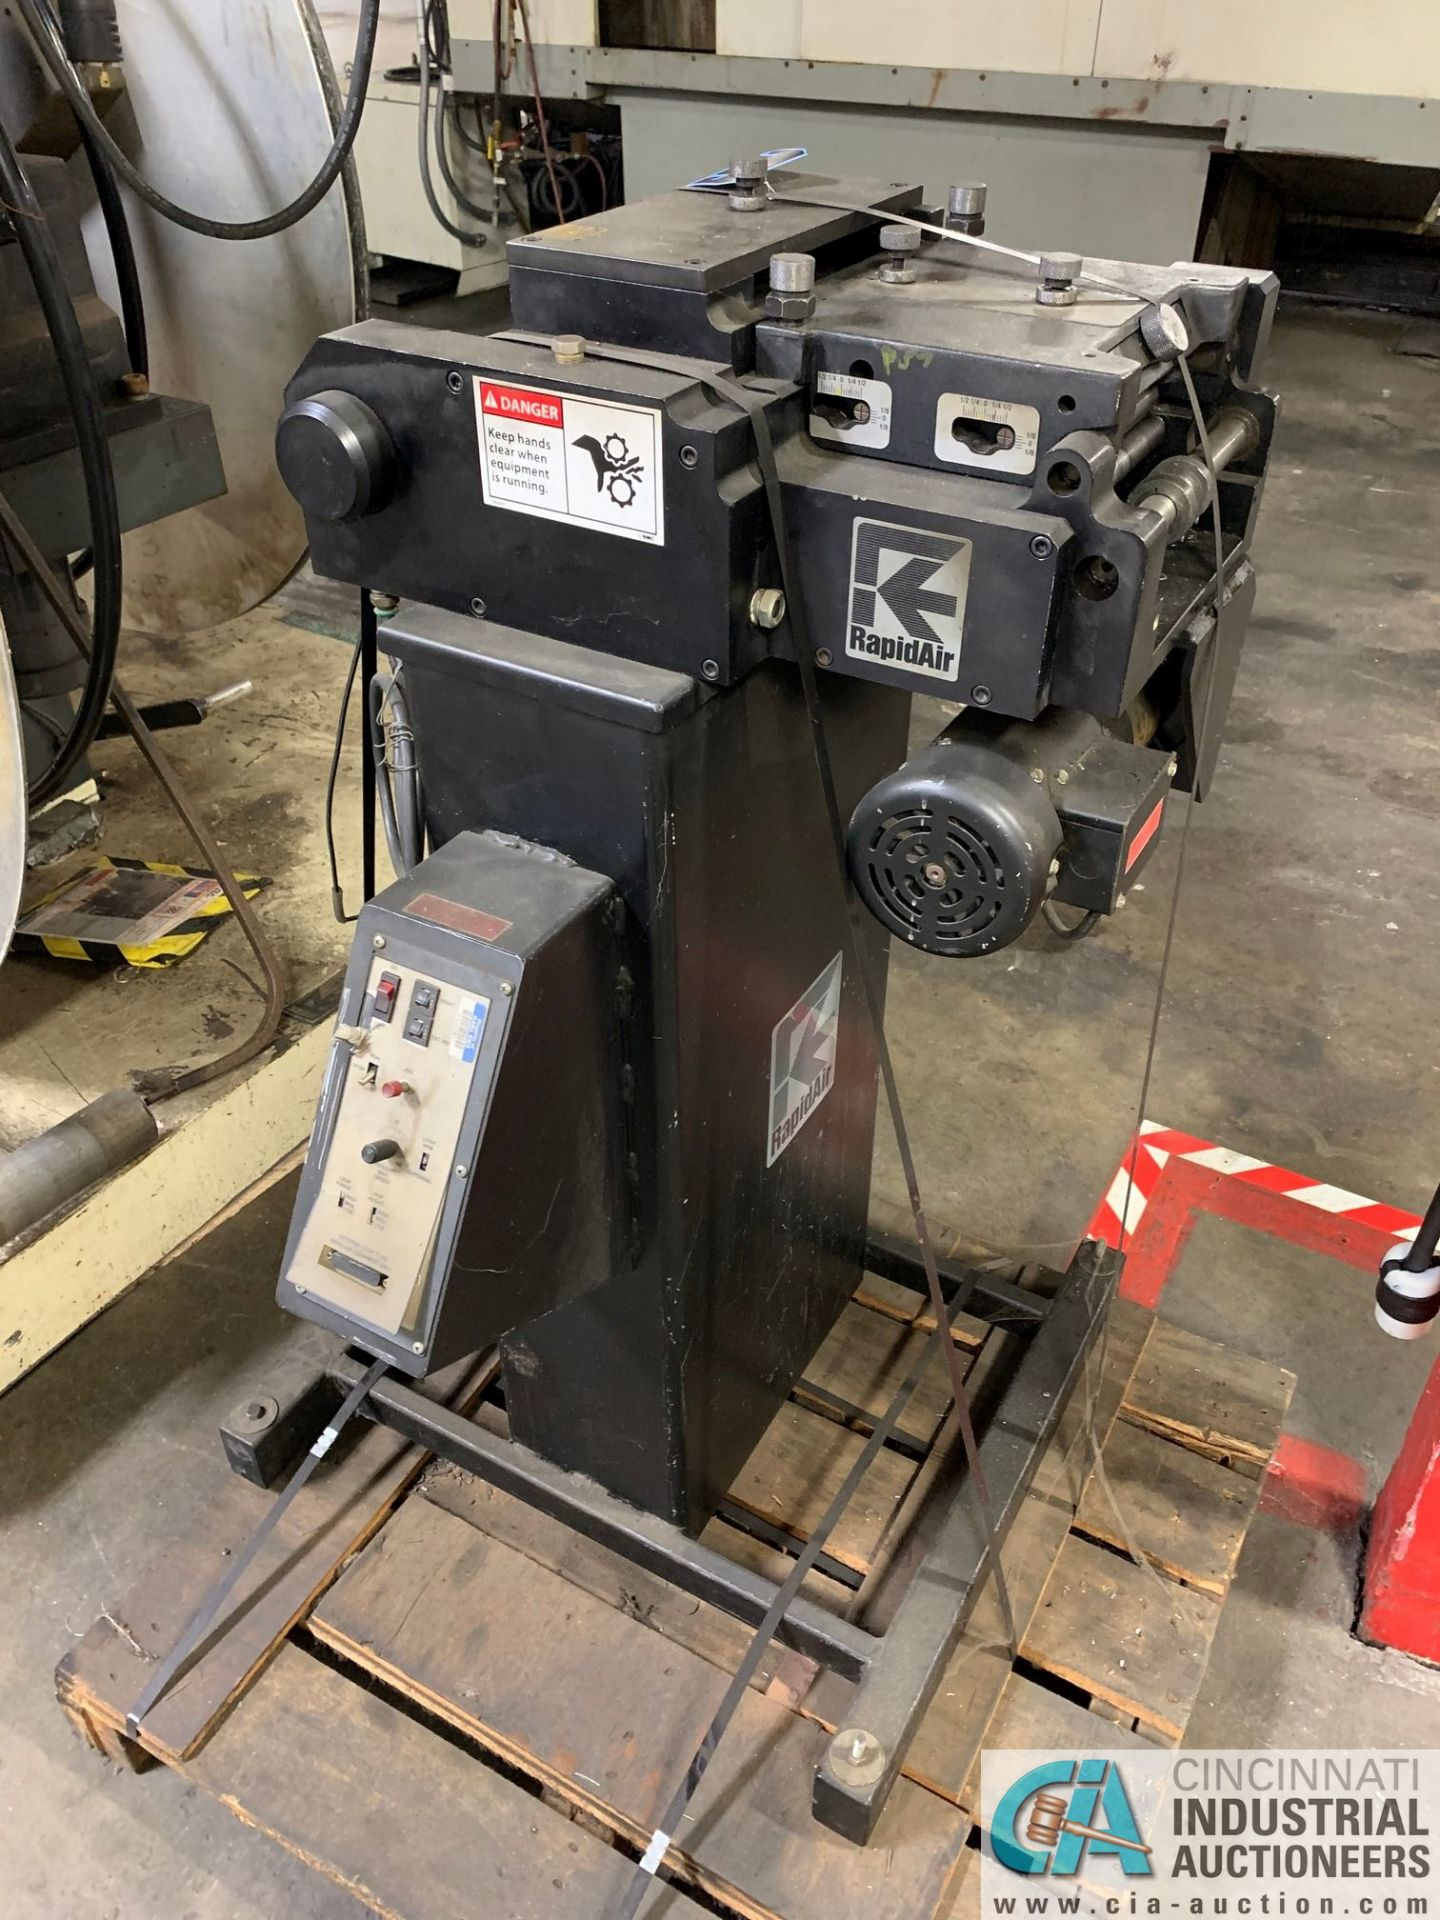 RAPID AIR FEED SYSTEM MODEL RS79AP DE UNCOILER; S/N 83383 AND MODEL SBX8 STRAIGHTENER - Image 6 of 10